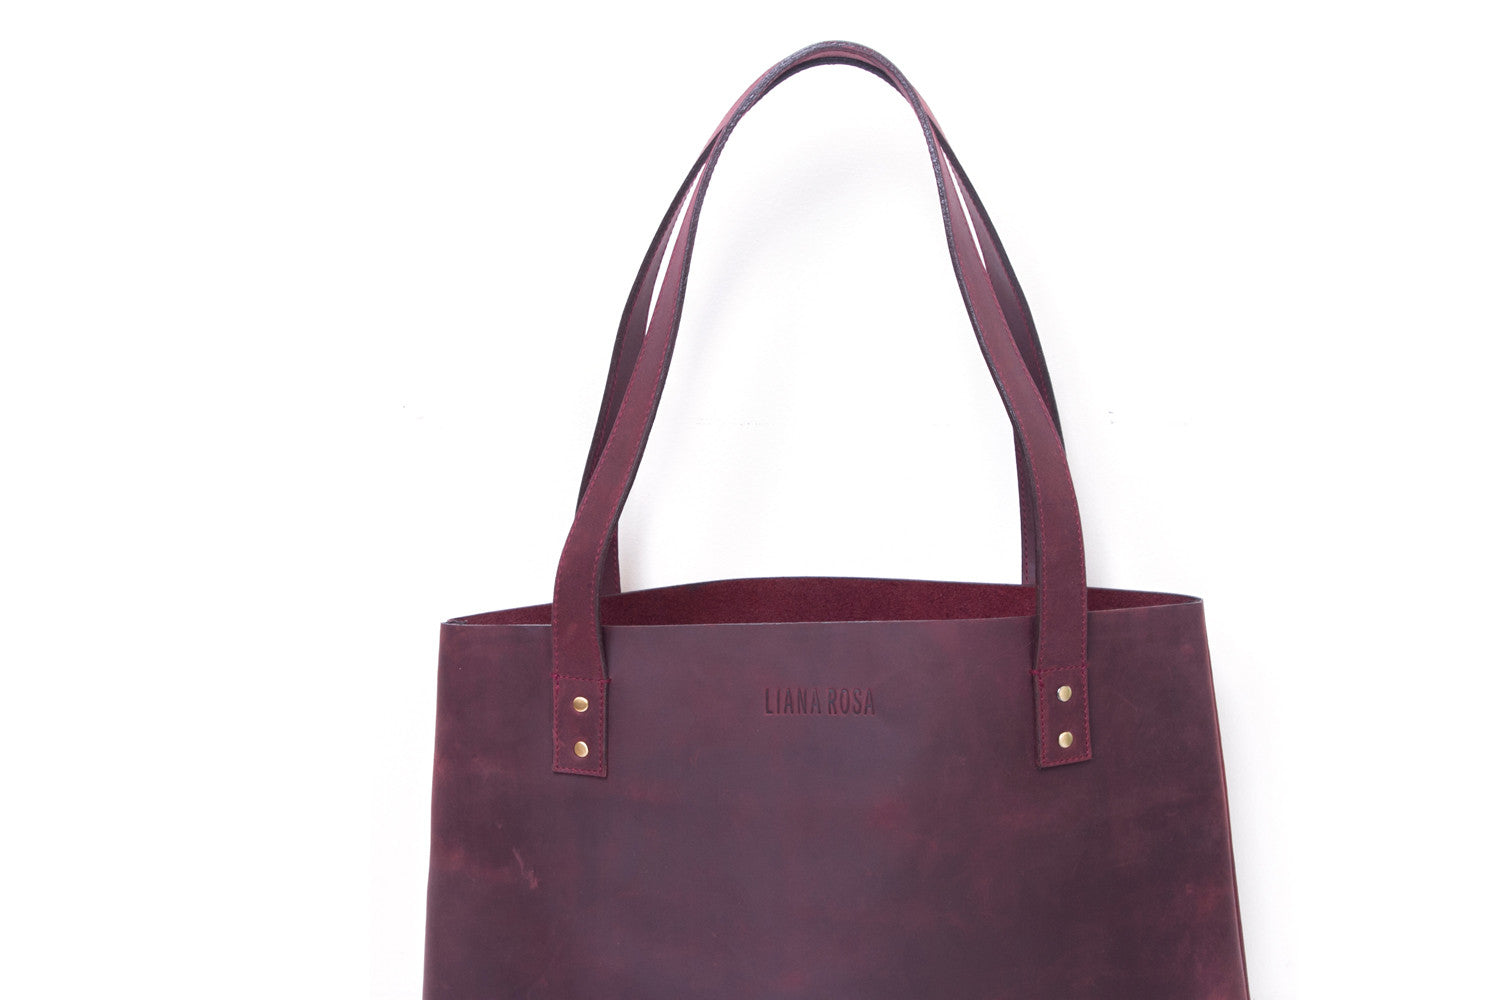 Henry Sangria Burgundy Leather Tote Bag Close Up View by Liana Rosa